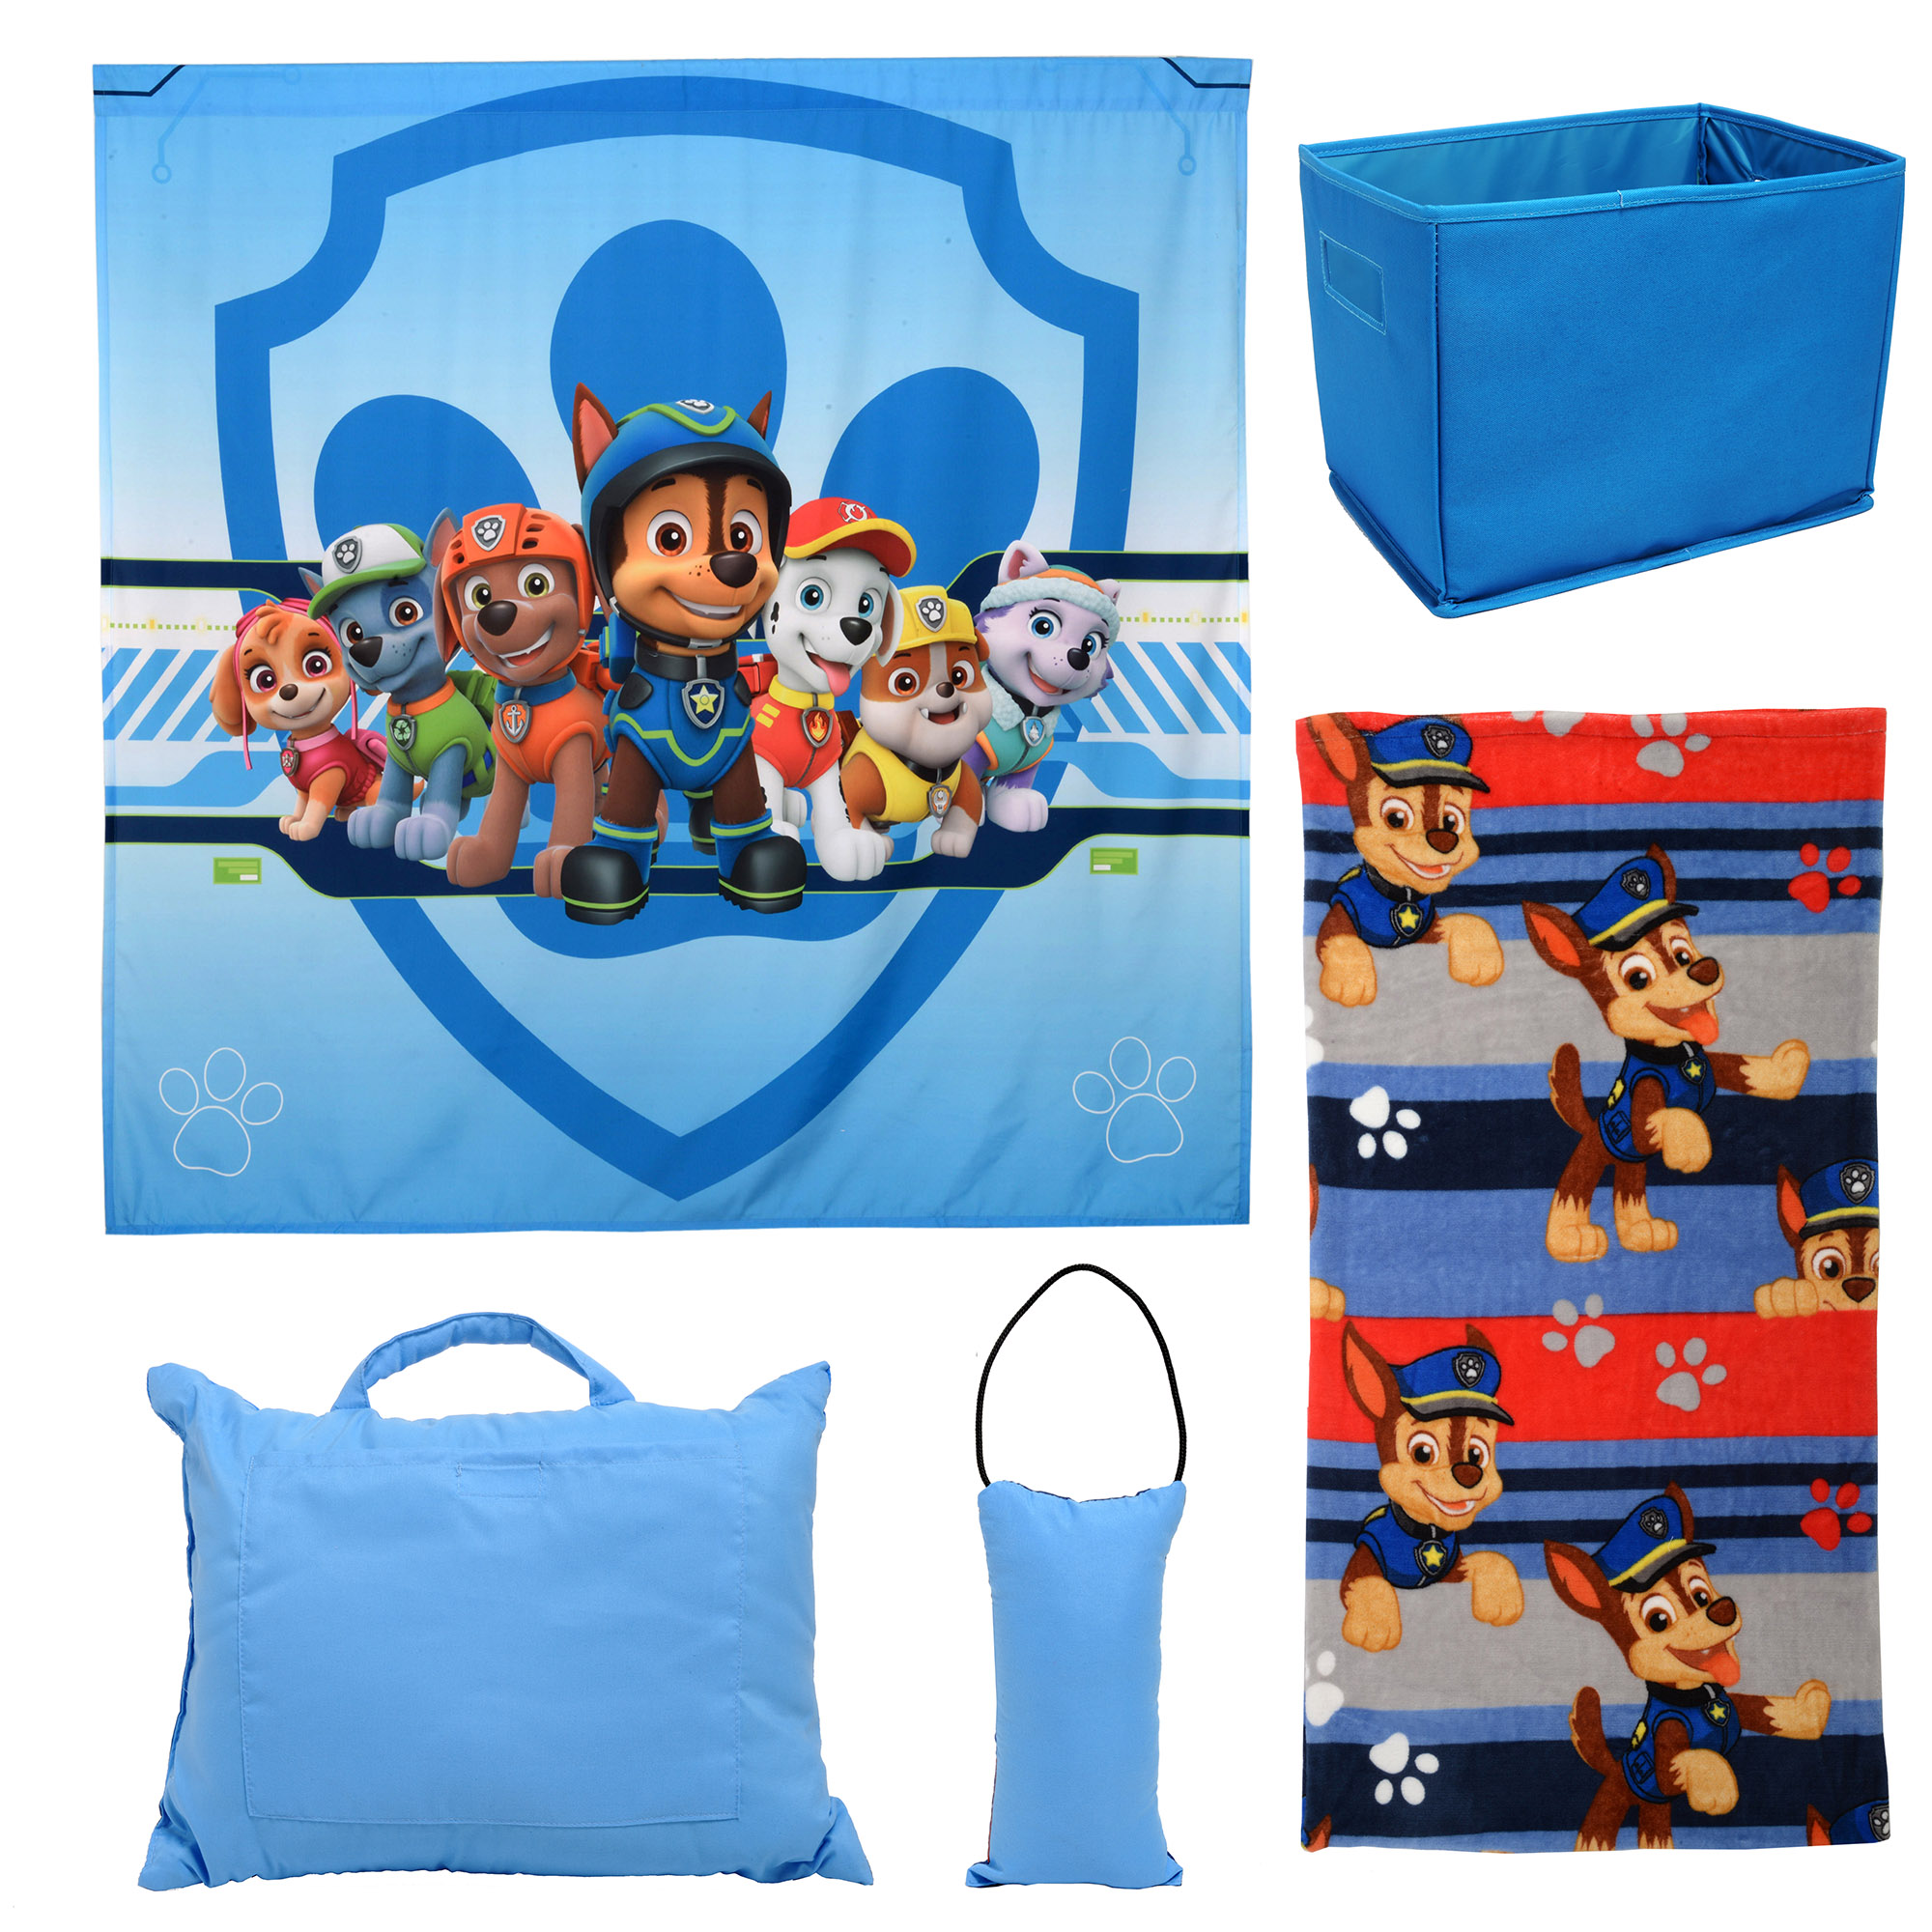 paw patrol 5pc kids bedroom set w pillows blanket storage and tapestry